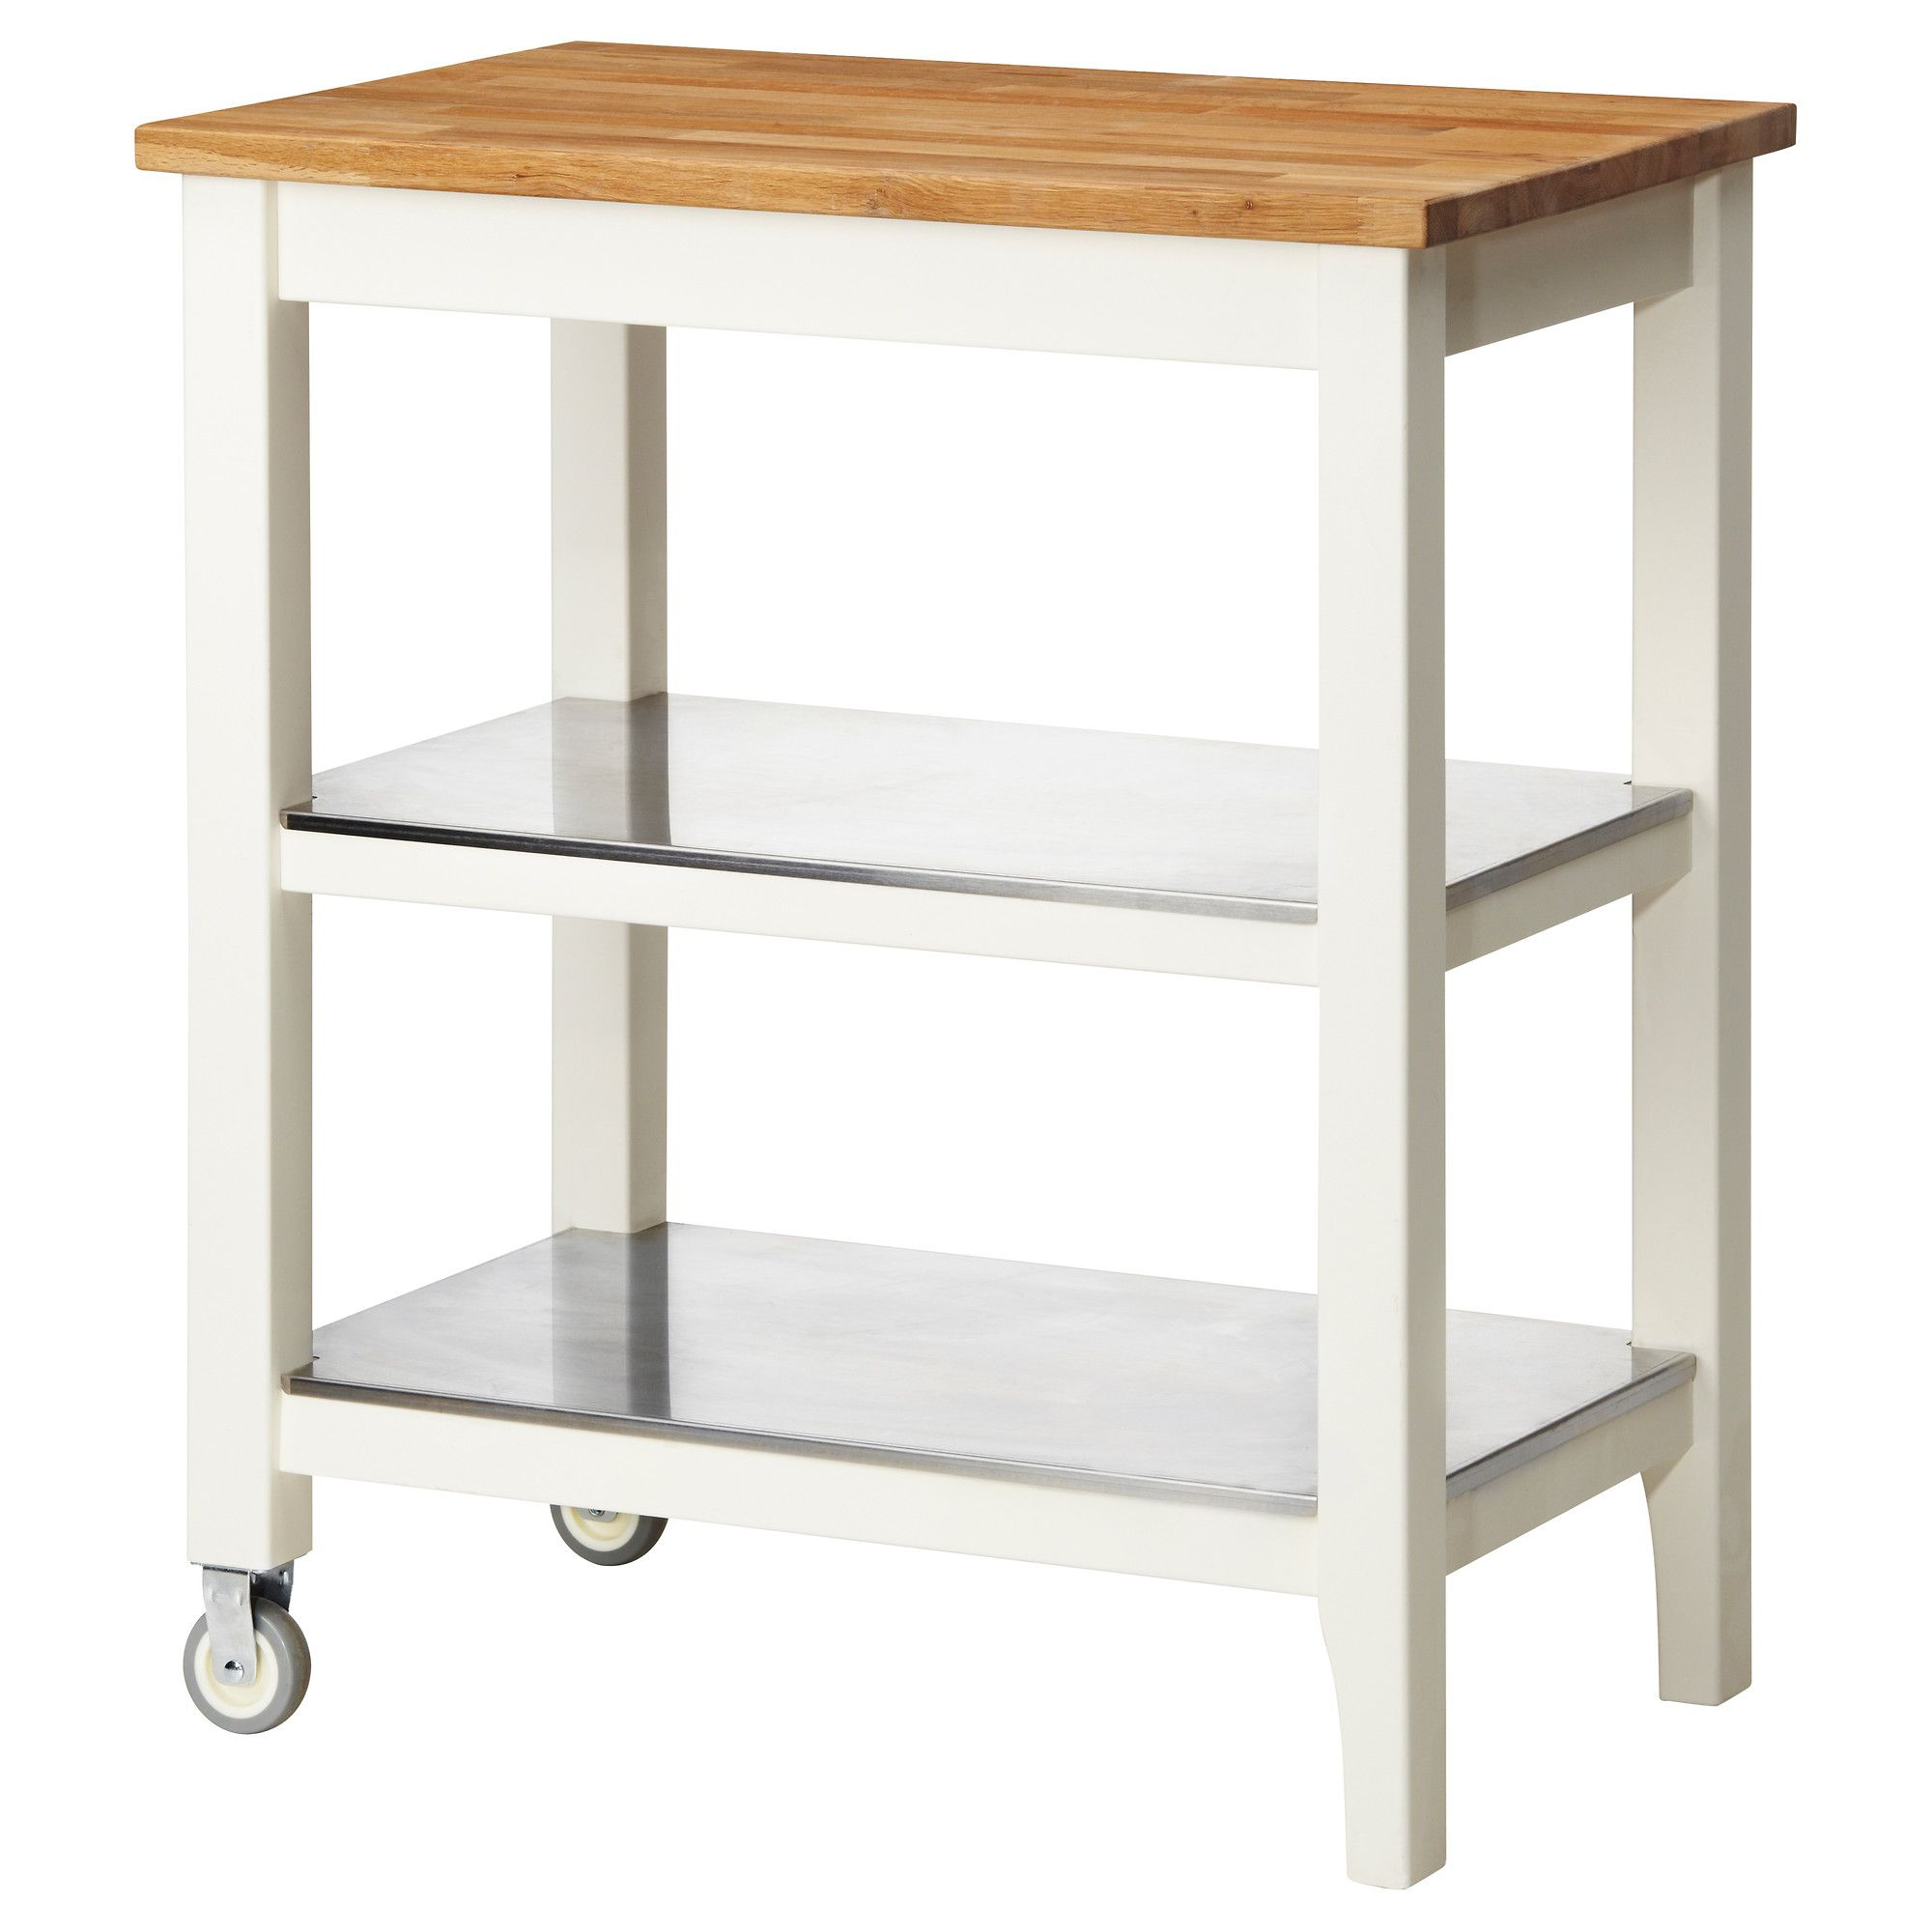 Furniture And Home Furnishings Village Reno Kitchen Island Cart